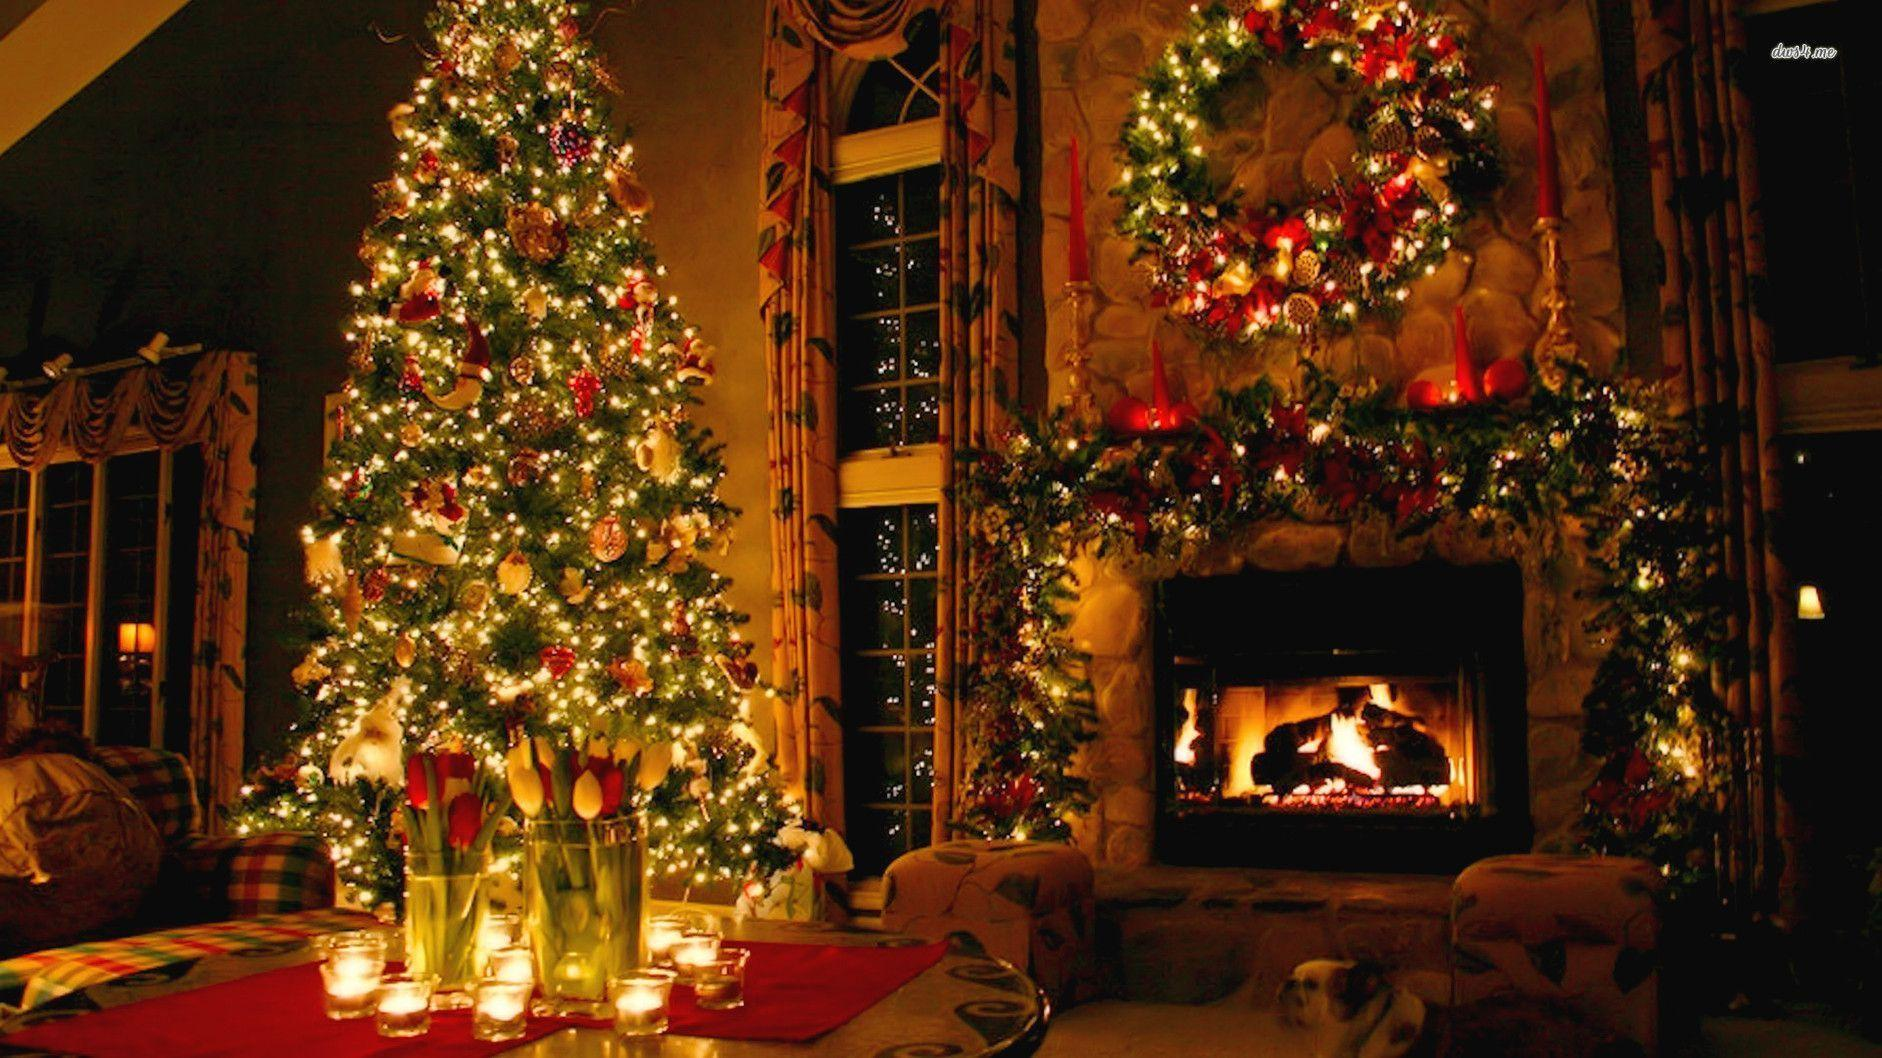 Christmas fireplace backgrounds wallpaper cave for Christmas decorations indoor